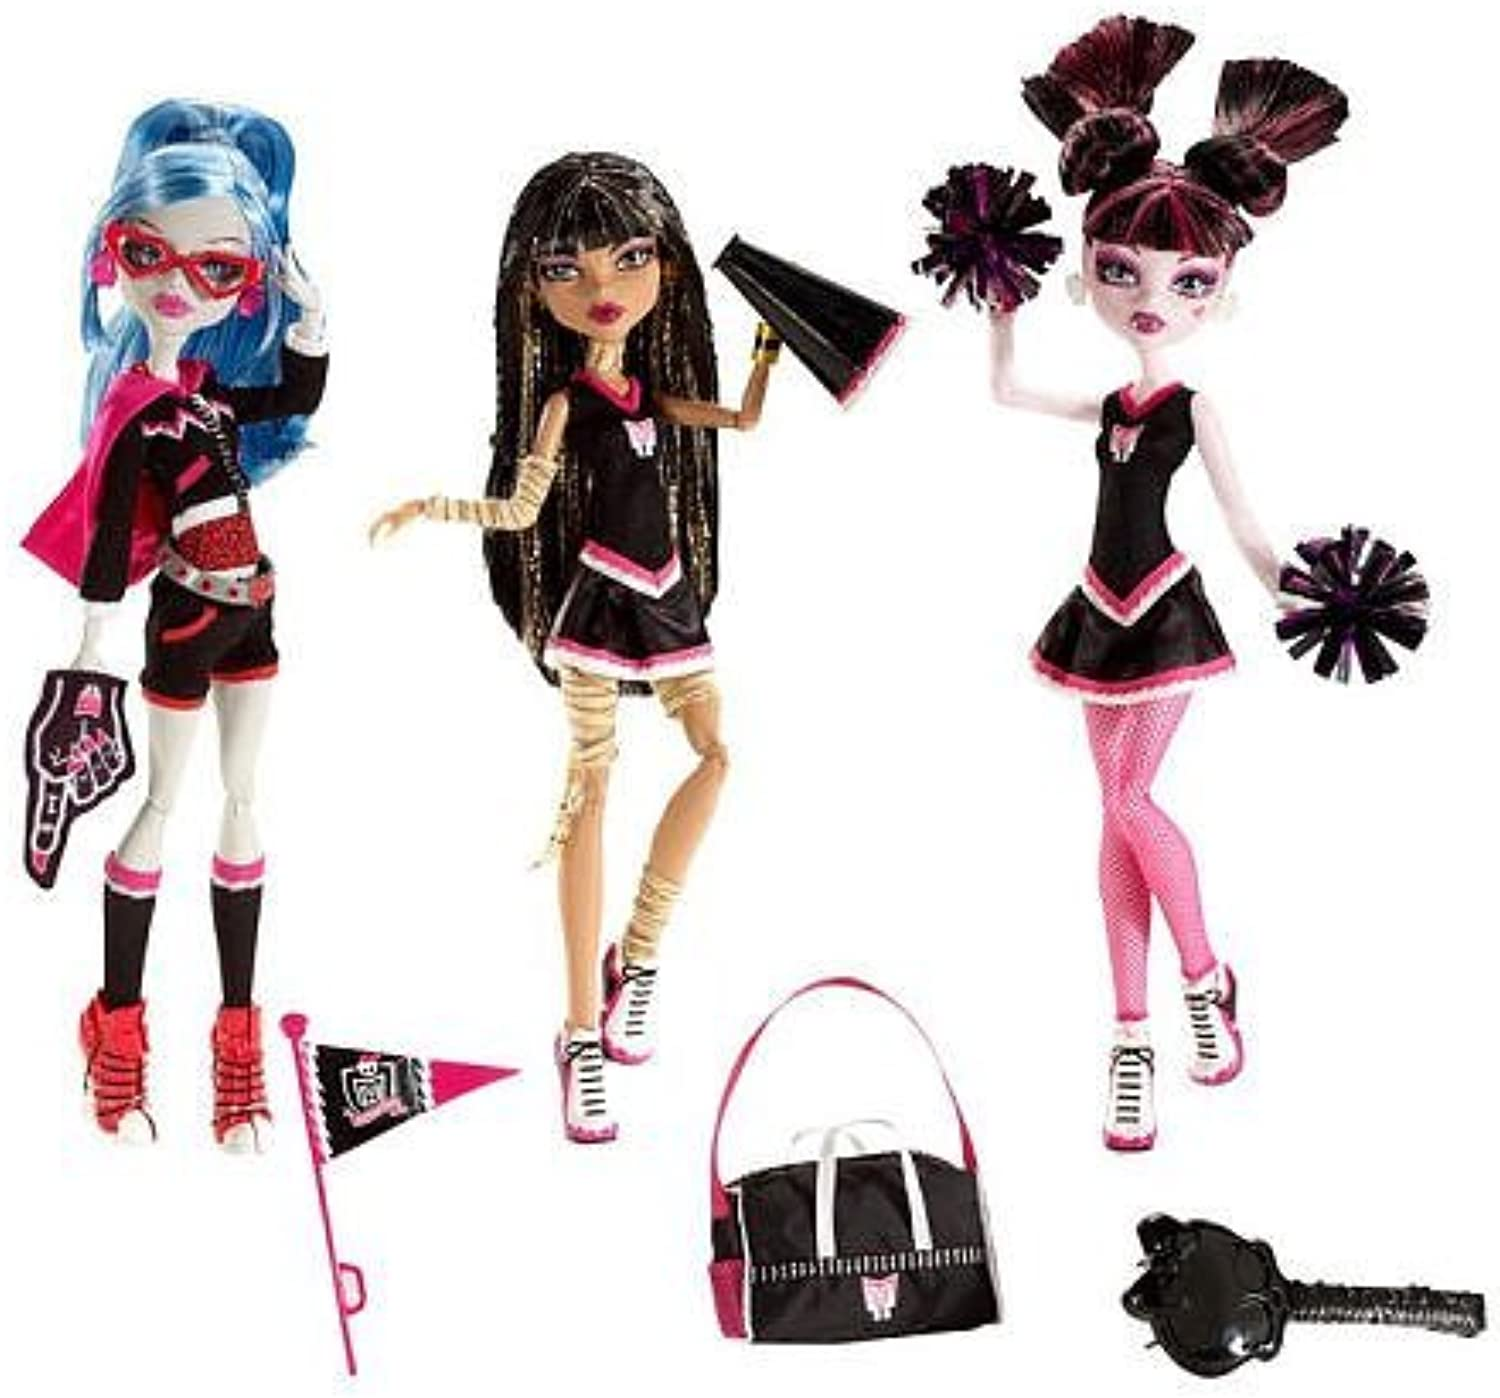 Exclusive Monster High Ghoul Spirit Doll 3Pack  Draculaura, Cleo de Nile and Ghoulia Yelps